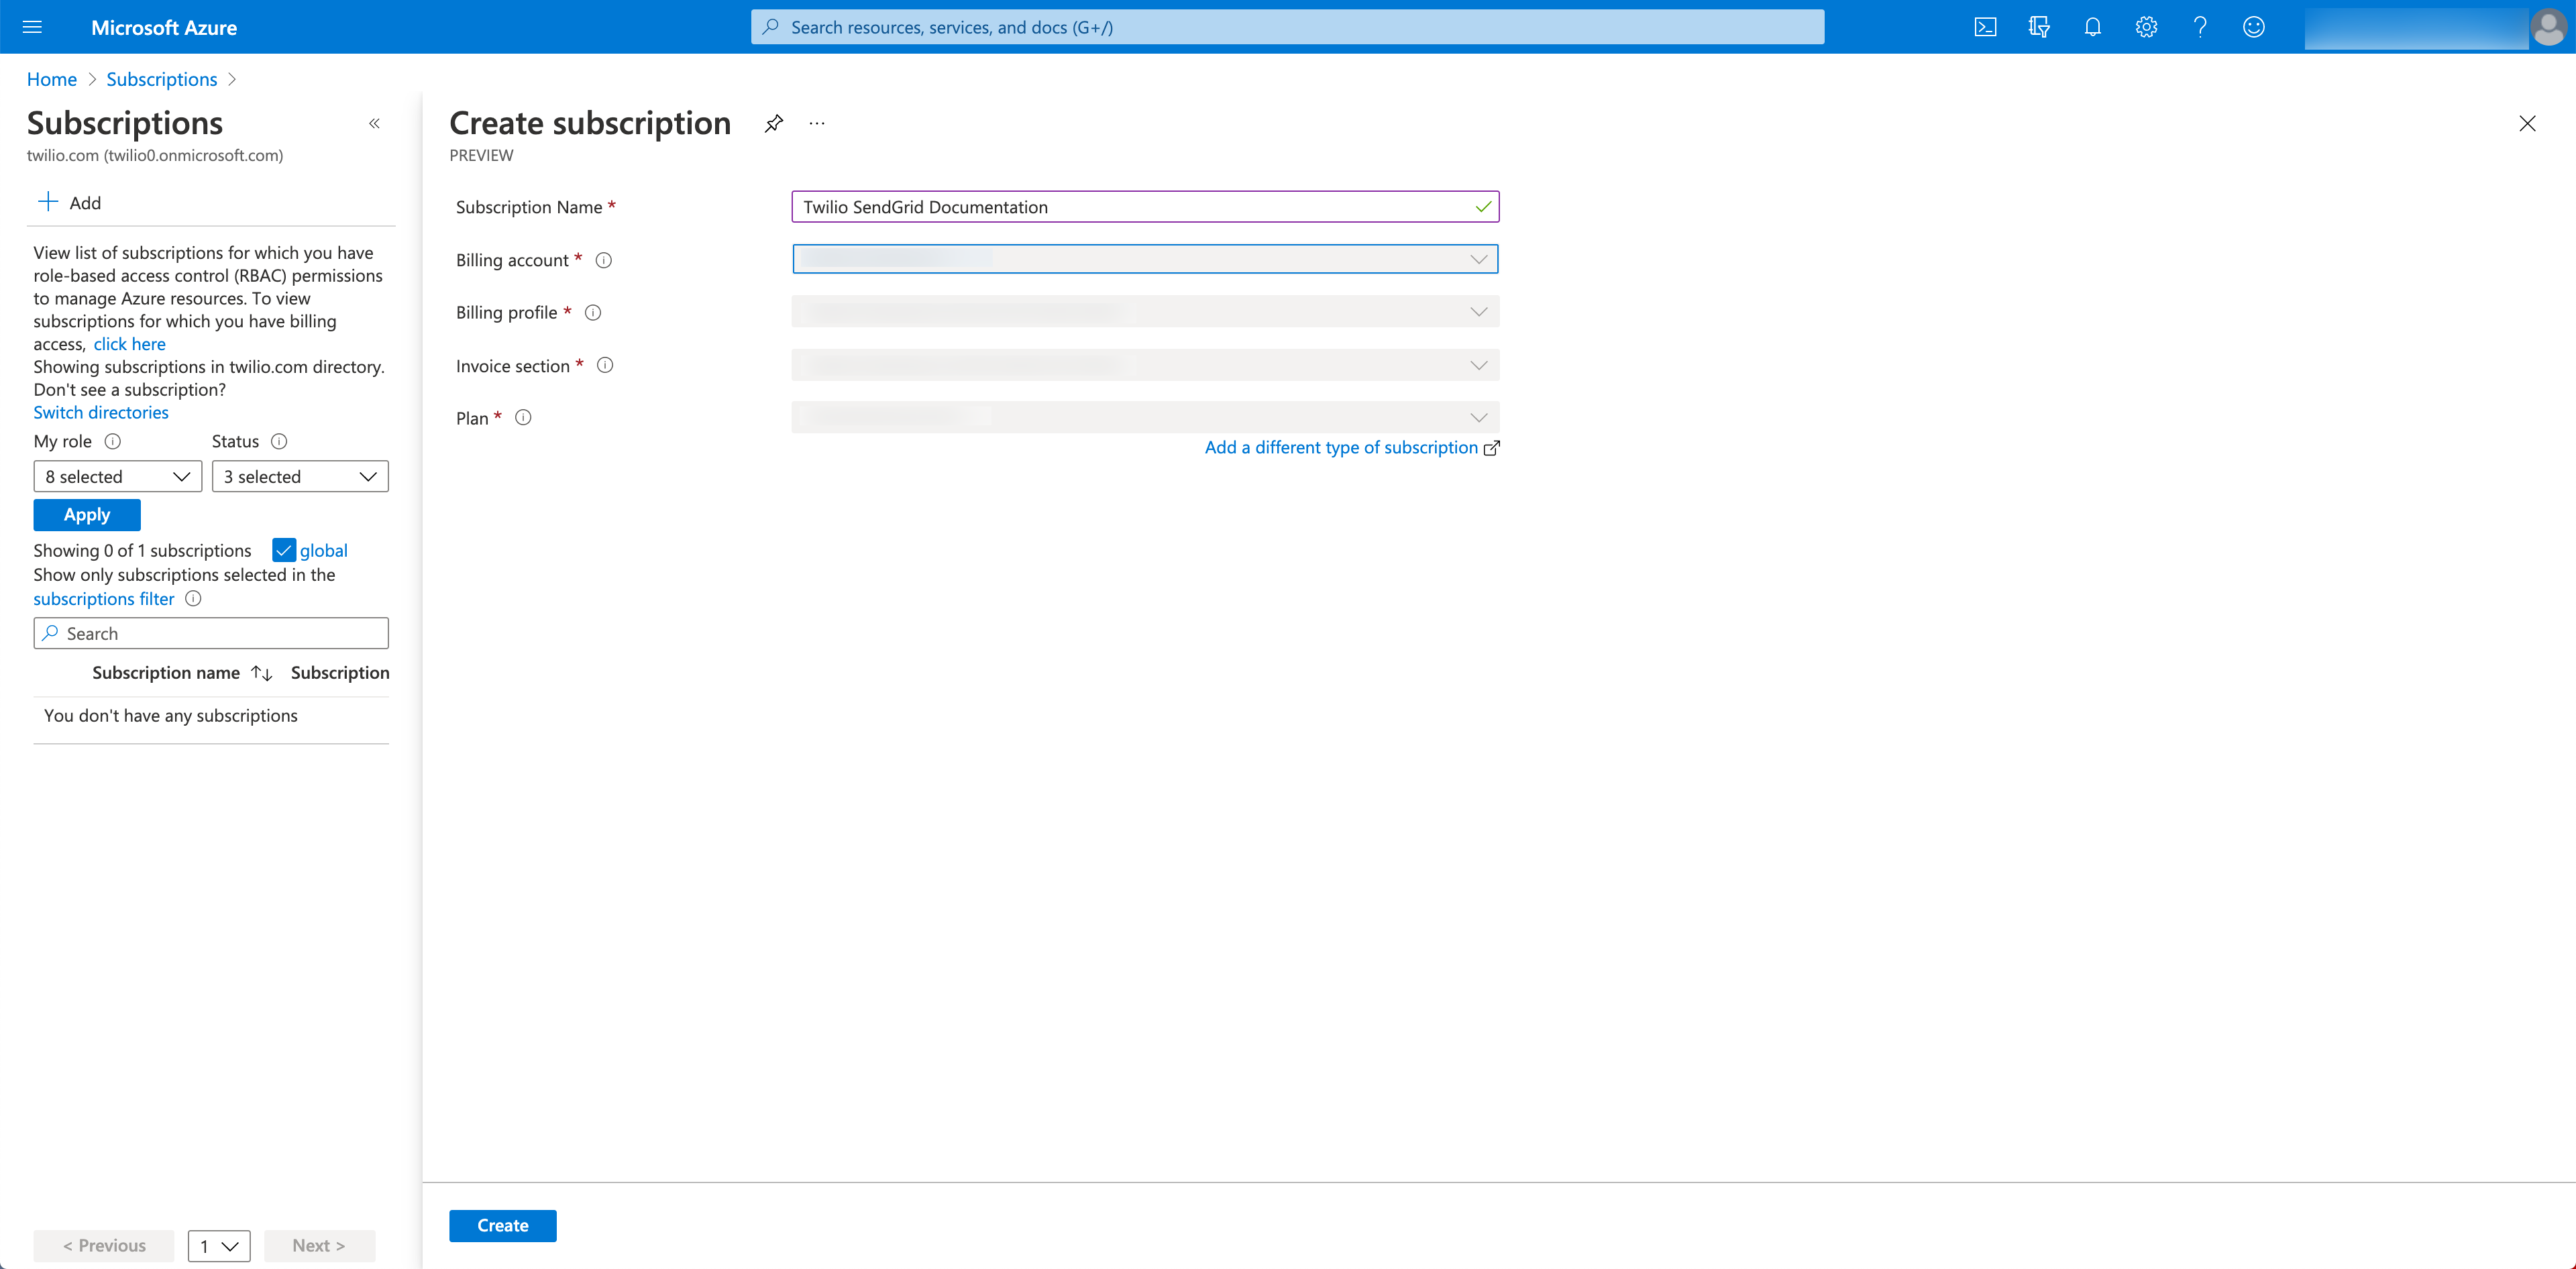 Azure Subscriptions form with the Subscription Name populated